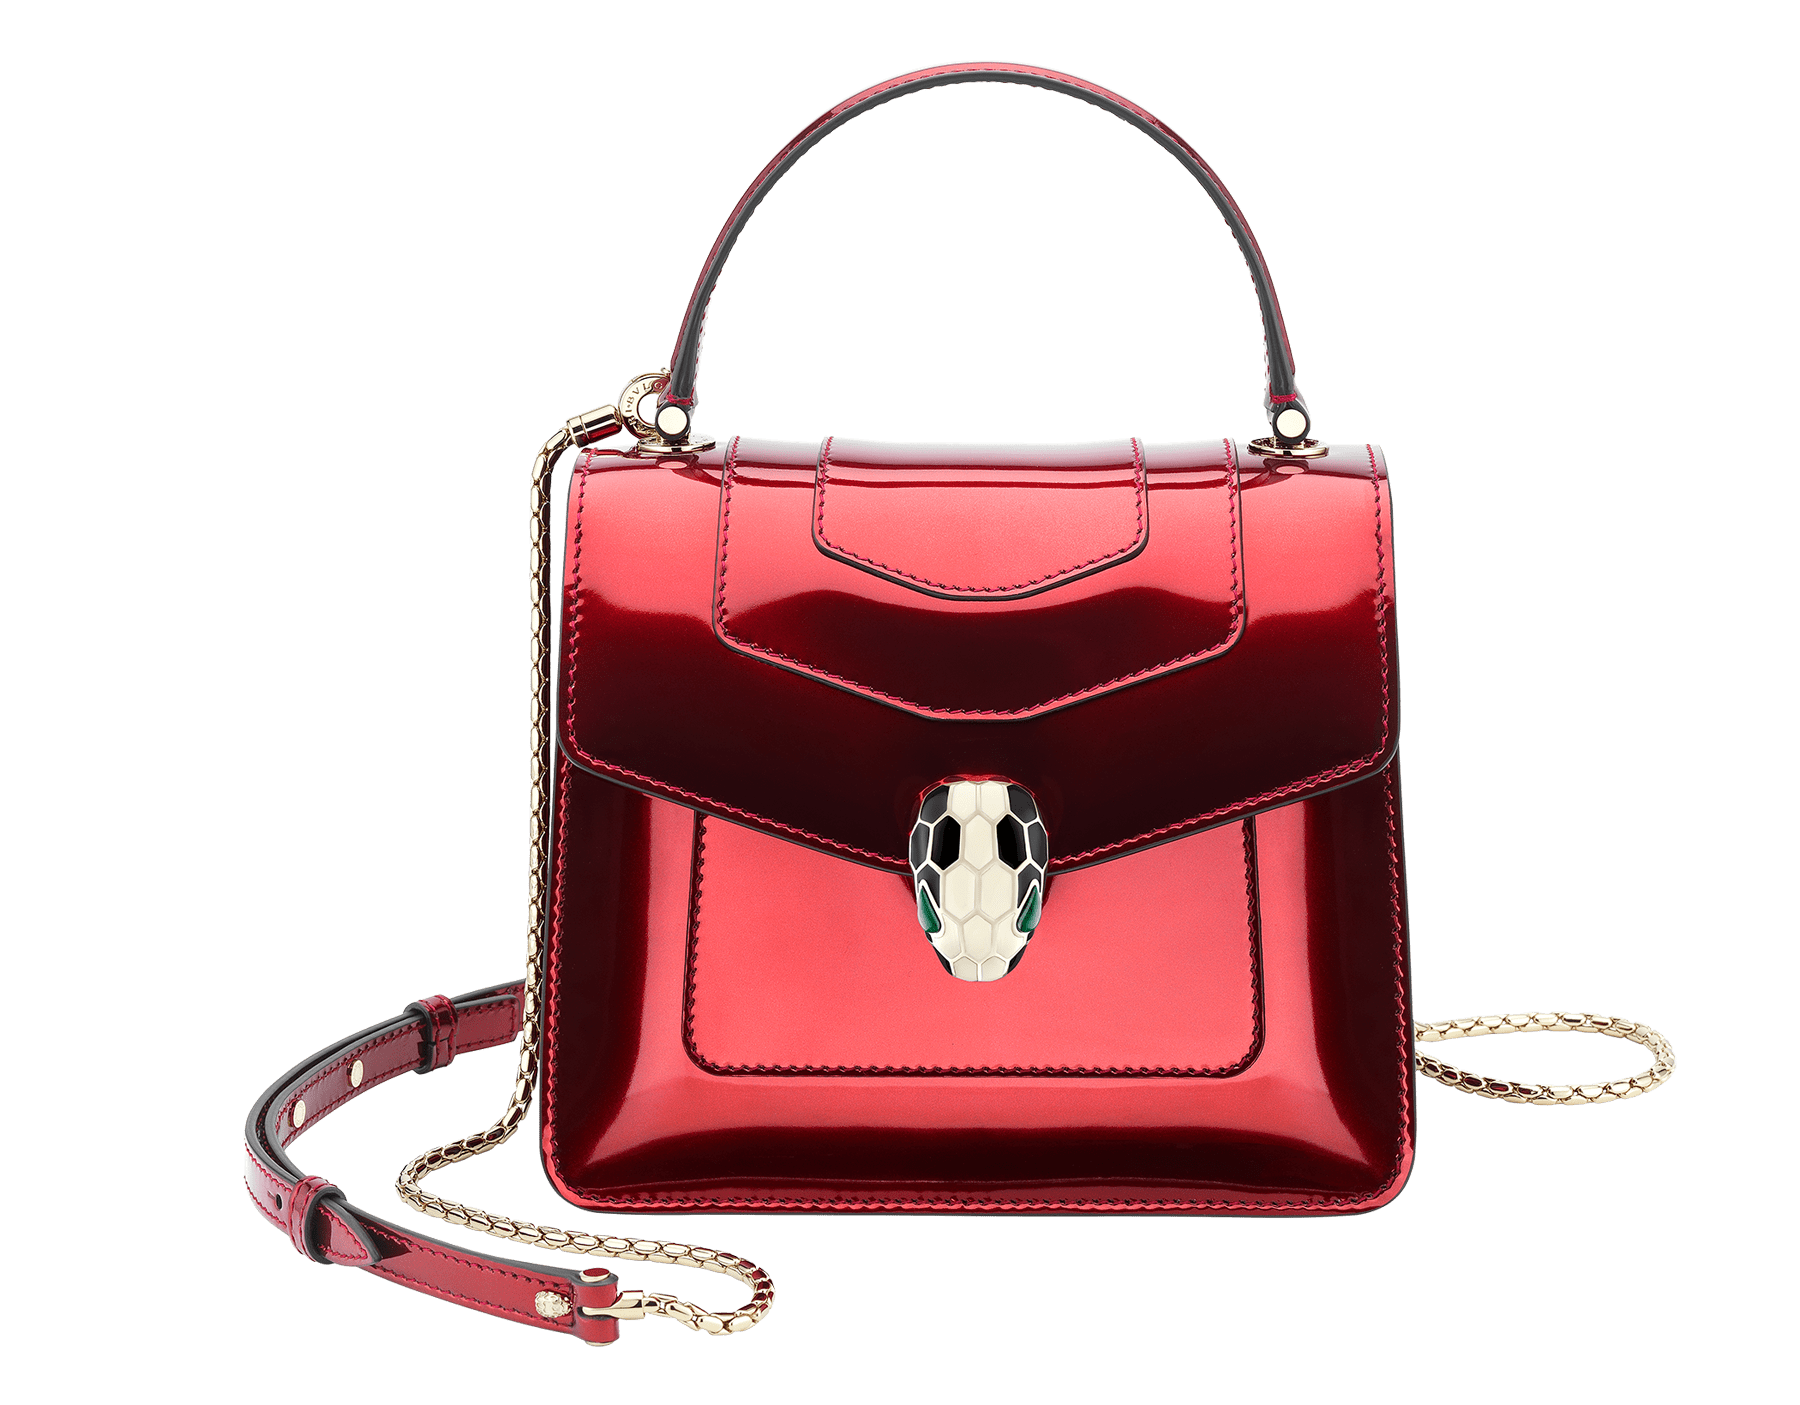 """Serpenti Forever"" crossbody bag in roman garnet brushed metallic calf leather. Iconic snakehead closure in light gold plated brass enriched with black and white enamel and green malachite eyes. 287955 image 1"